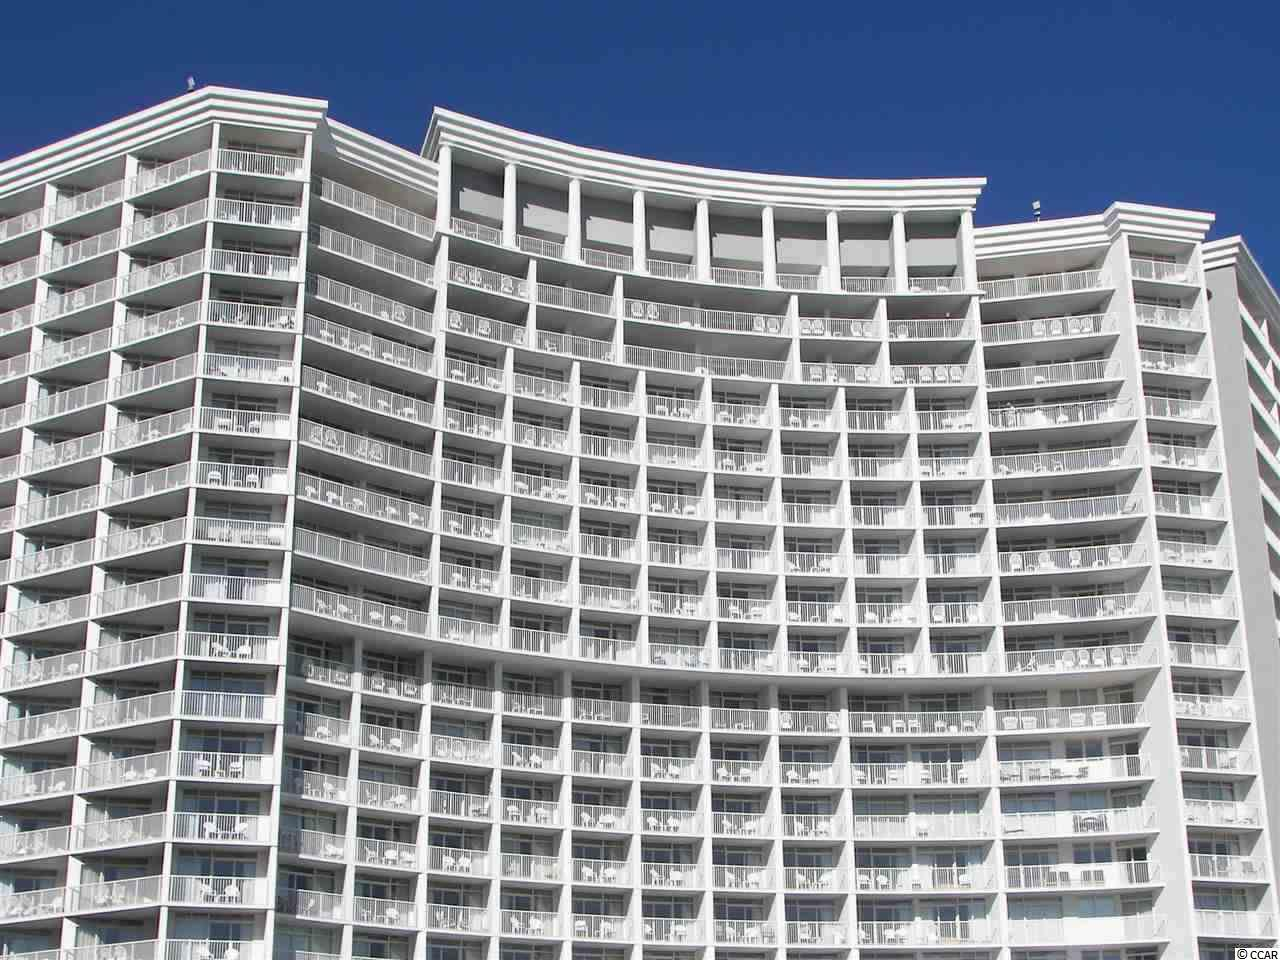 Located in the secluded Arcadian section of Myrtle Beach, Seawatch is surrounded by residential real estate.  This unit is on the 9th floor and is a 1 bedroom 1 full bath unit.  There are a multitude of amenities including on-site restaurant, heated indoor pools, whirlpools, outdoor pools, lazy rivers,and fitness center.  Everything you need is right here.  New HVAC installed 2019.   Seawatch is conveniently located close to shopping, dining, golf, entertainment, and all area attractions.